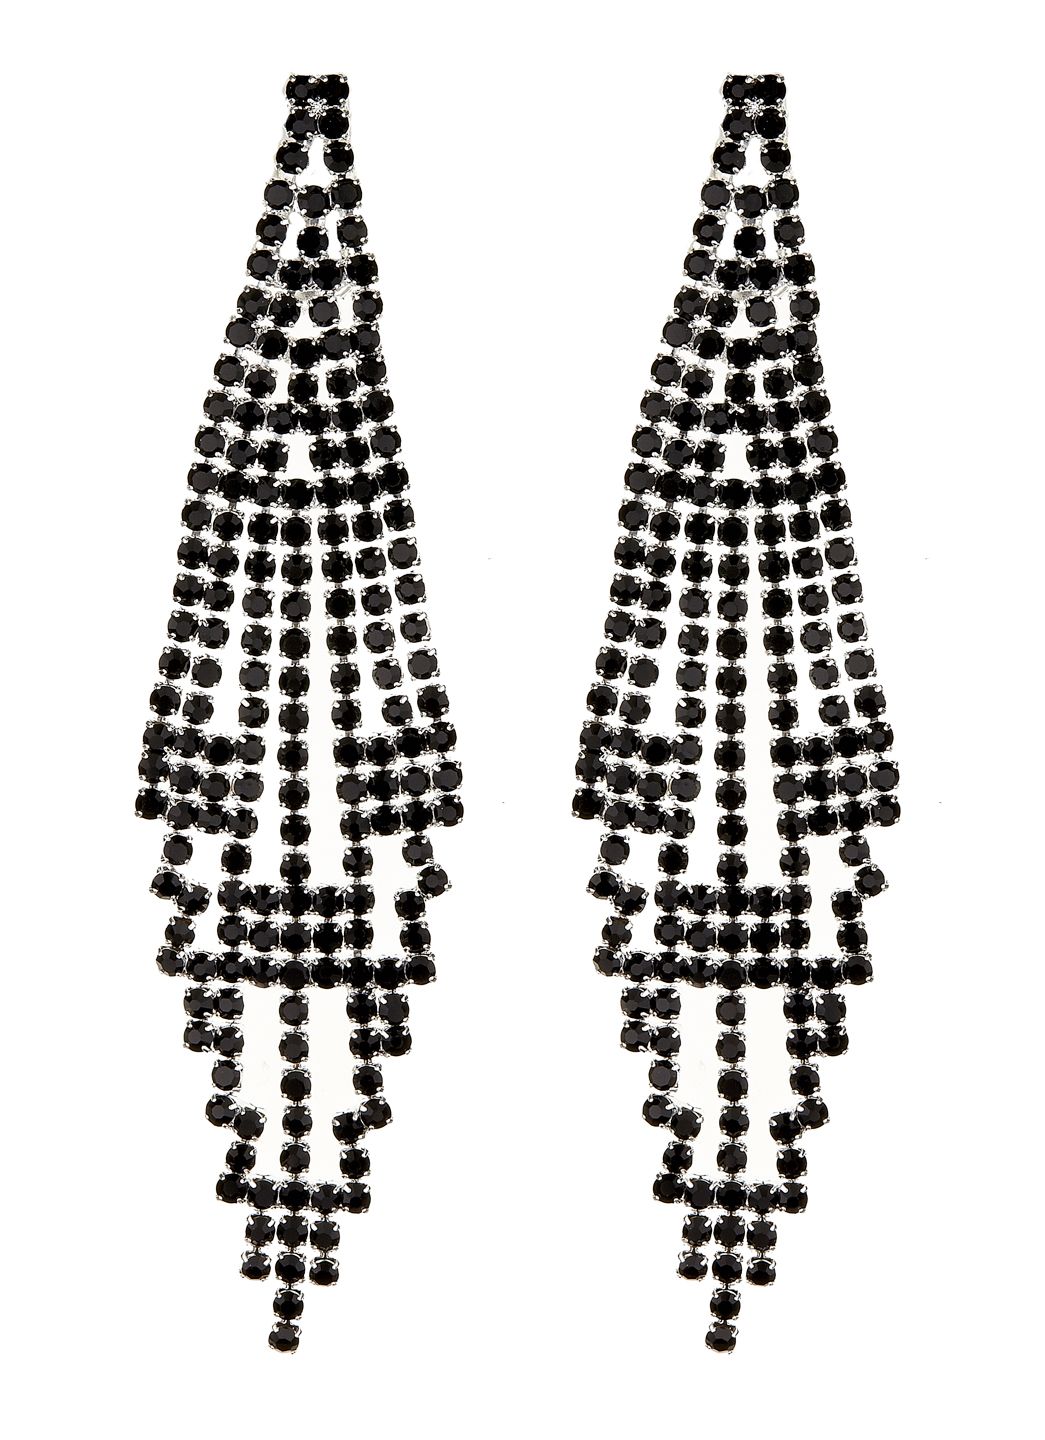 Clip On Earrings - Canei B - silver chandelier earring with black crystals